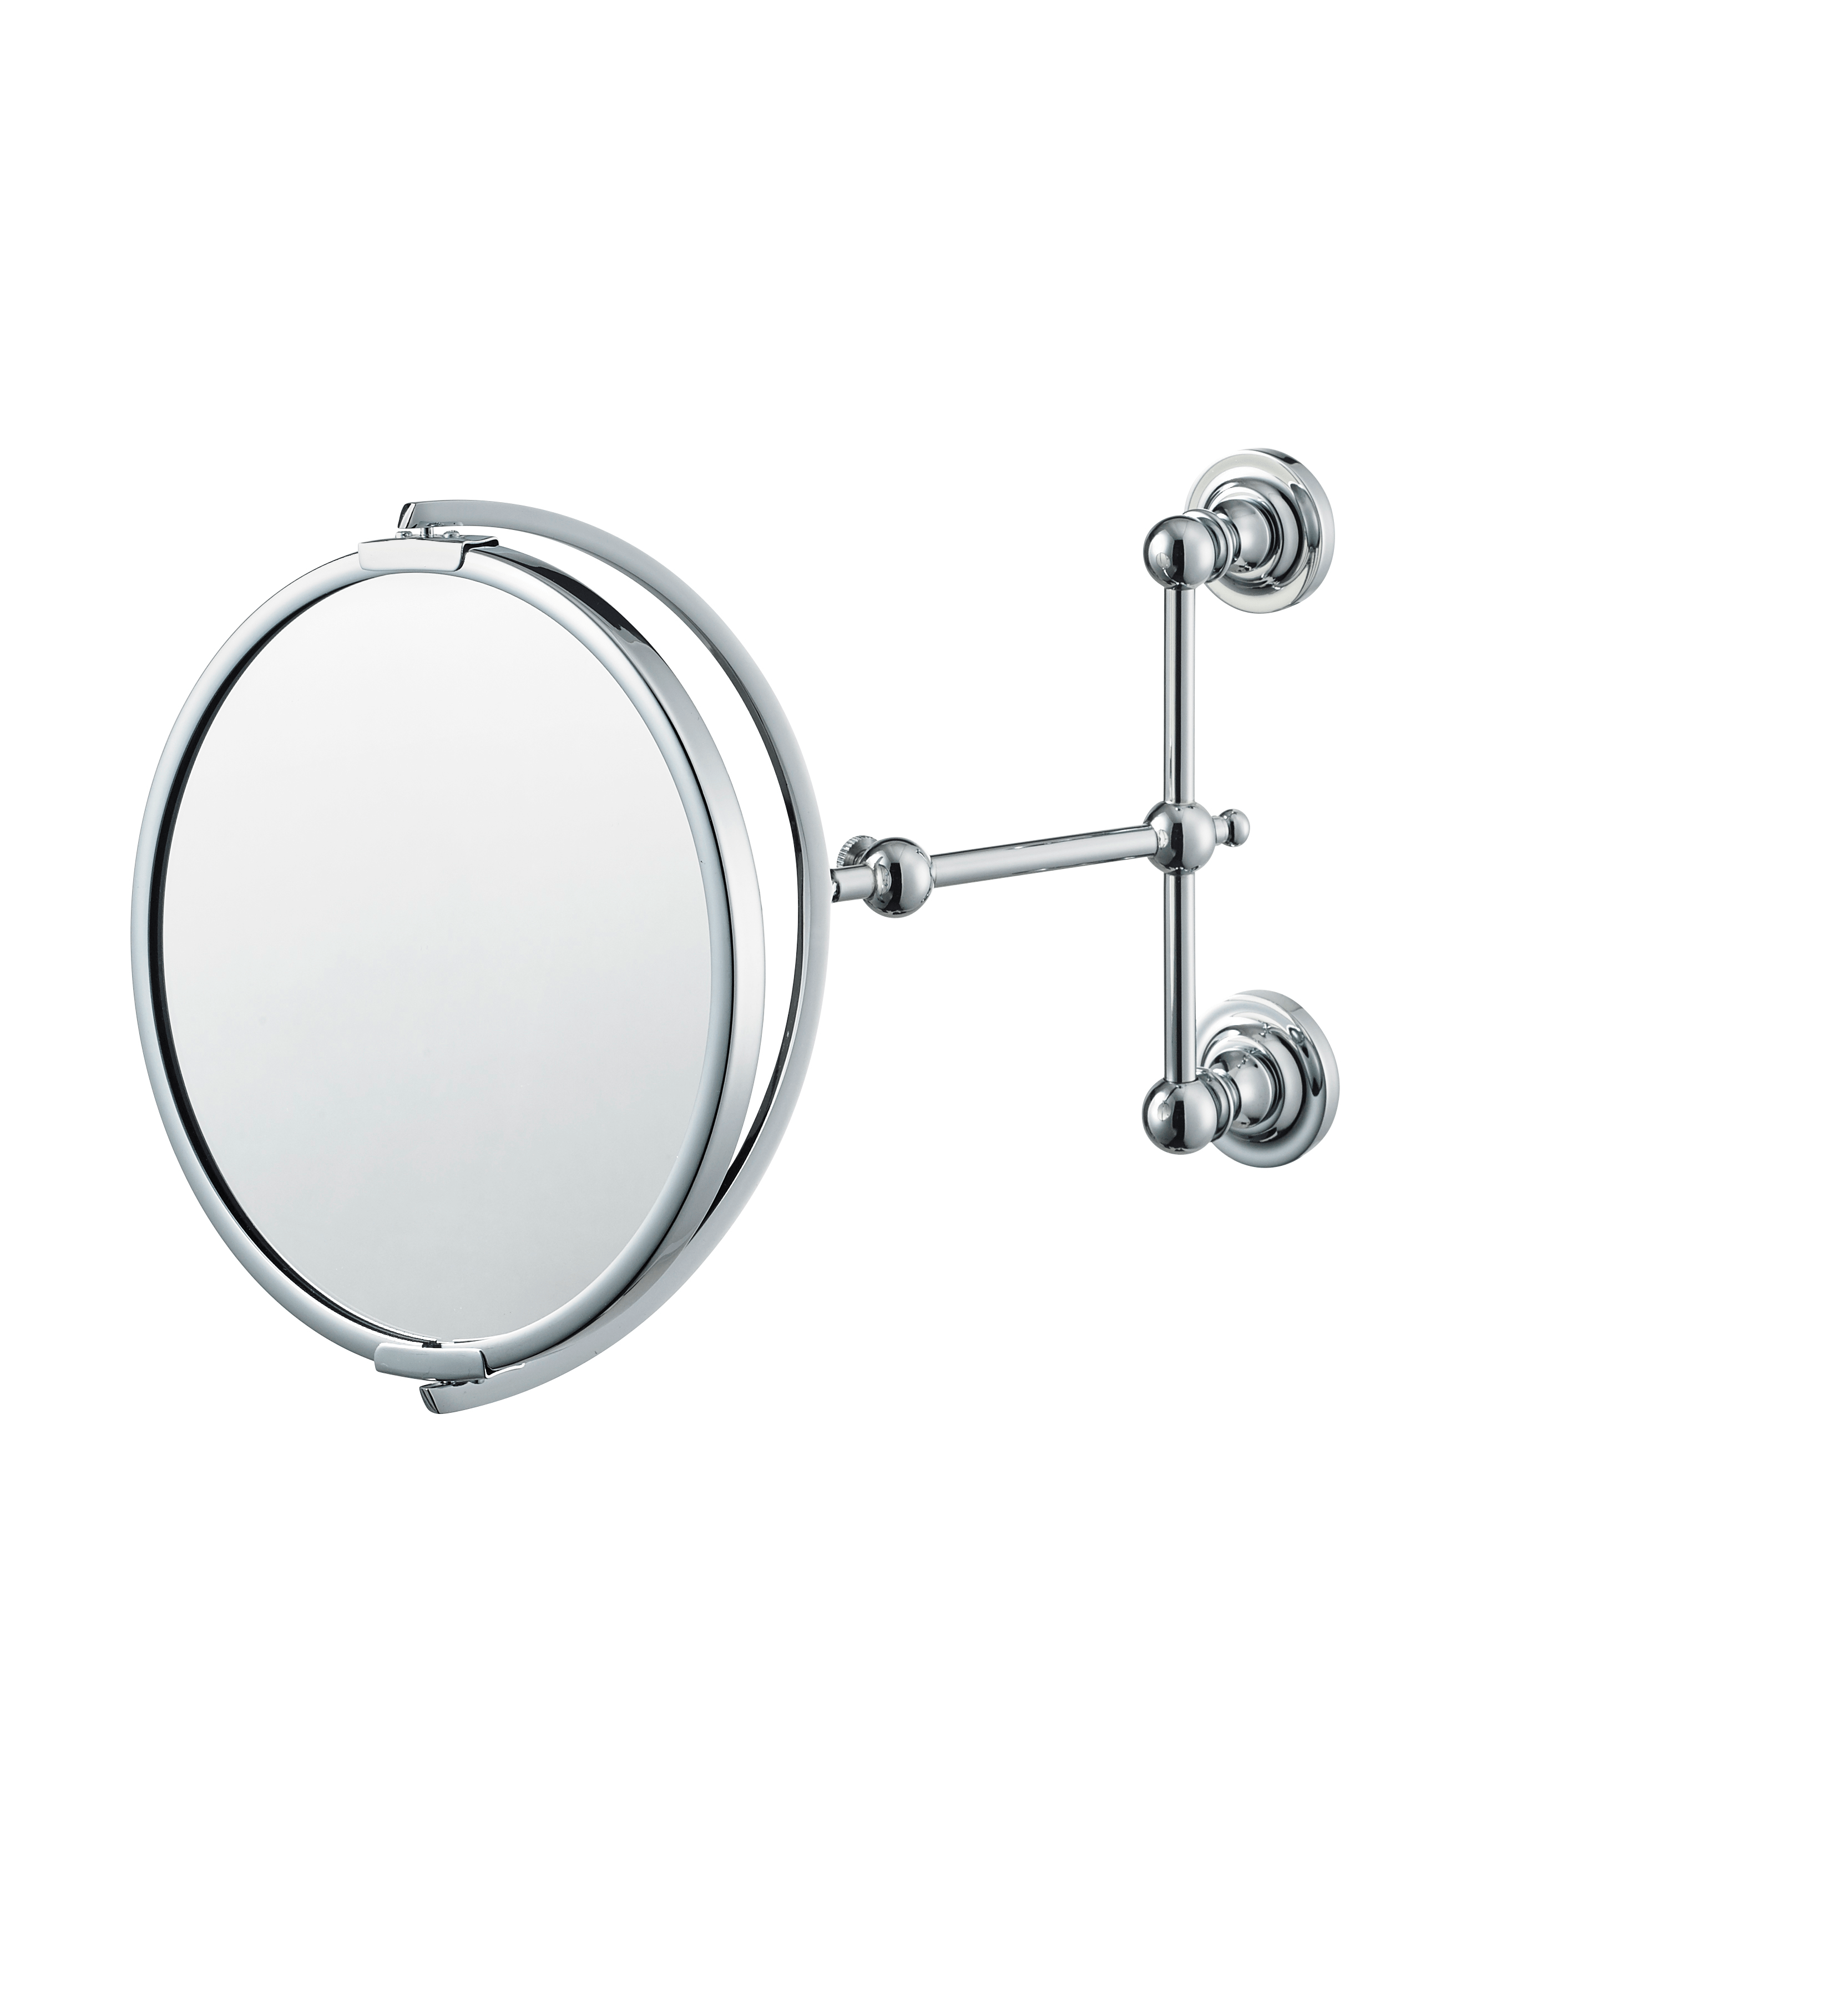 pivoting makeup mirror with concealed wall mounts